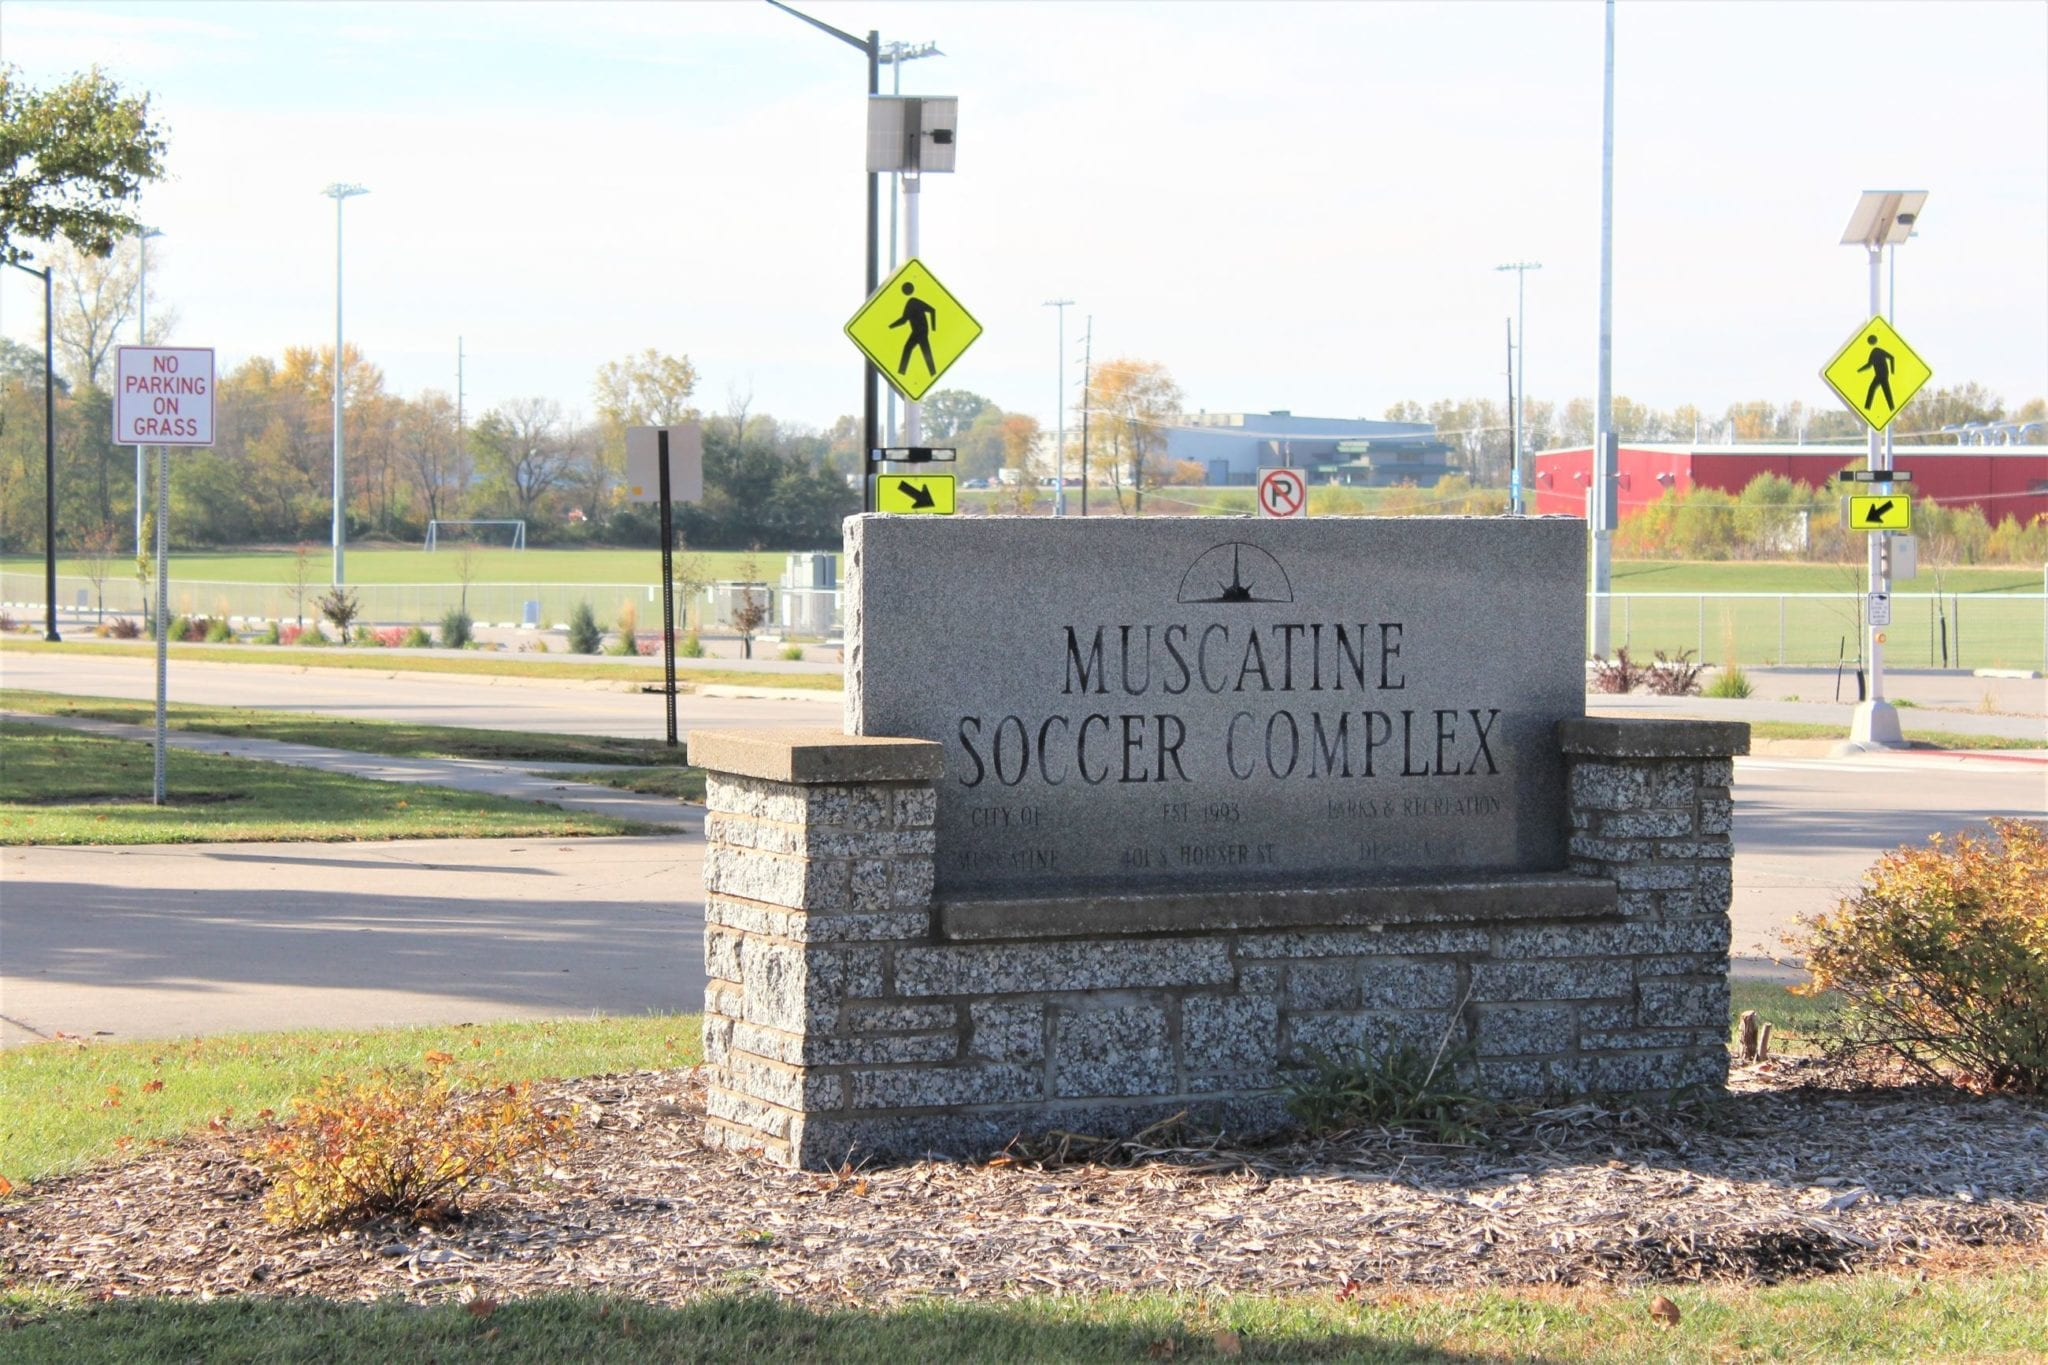 muscatine soccer complex sign